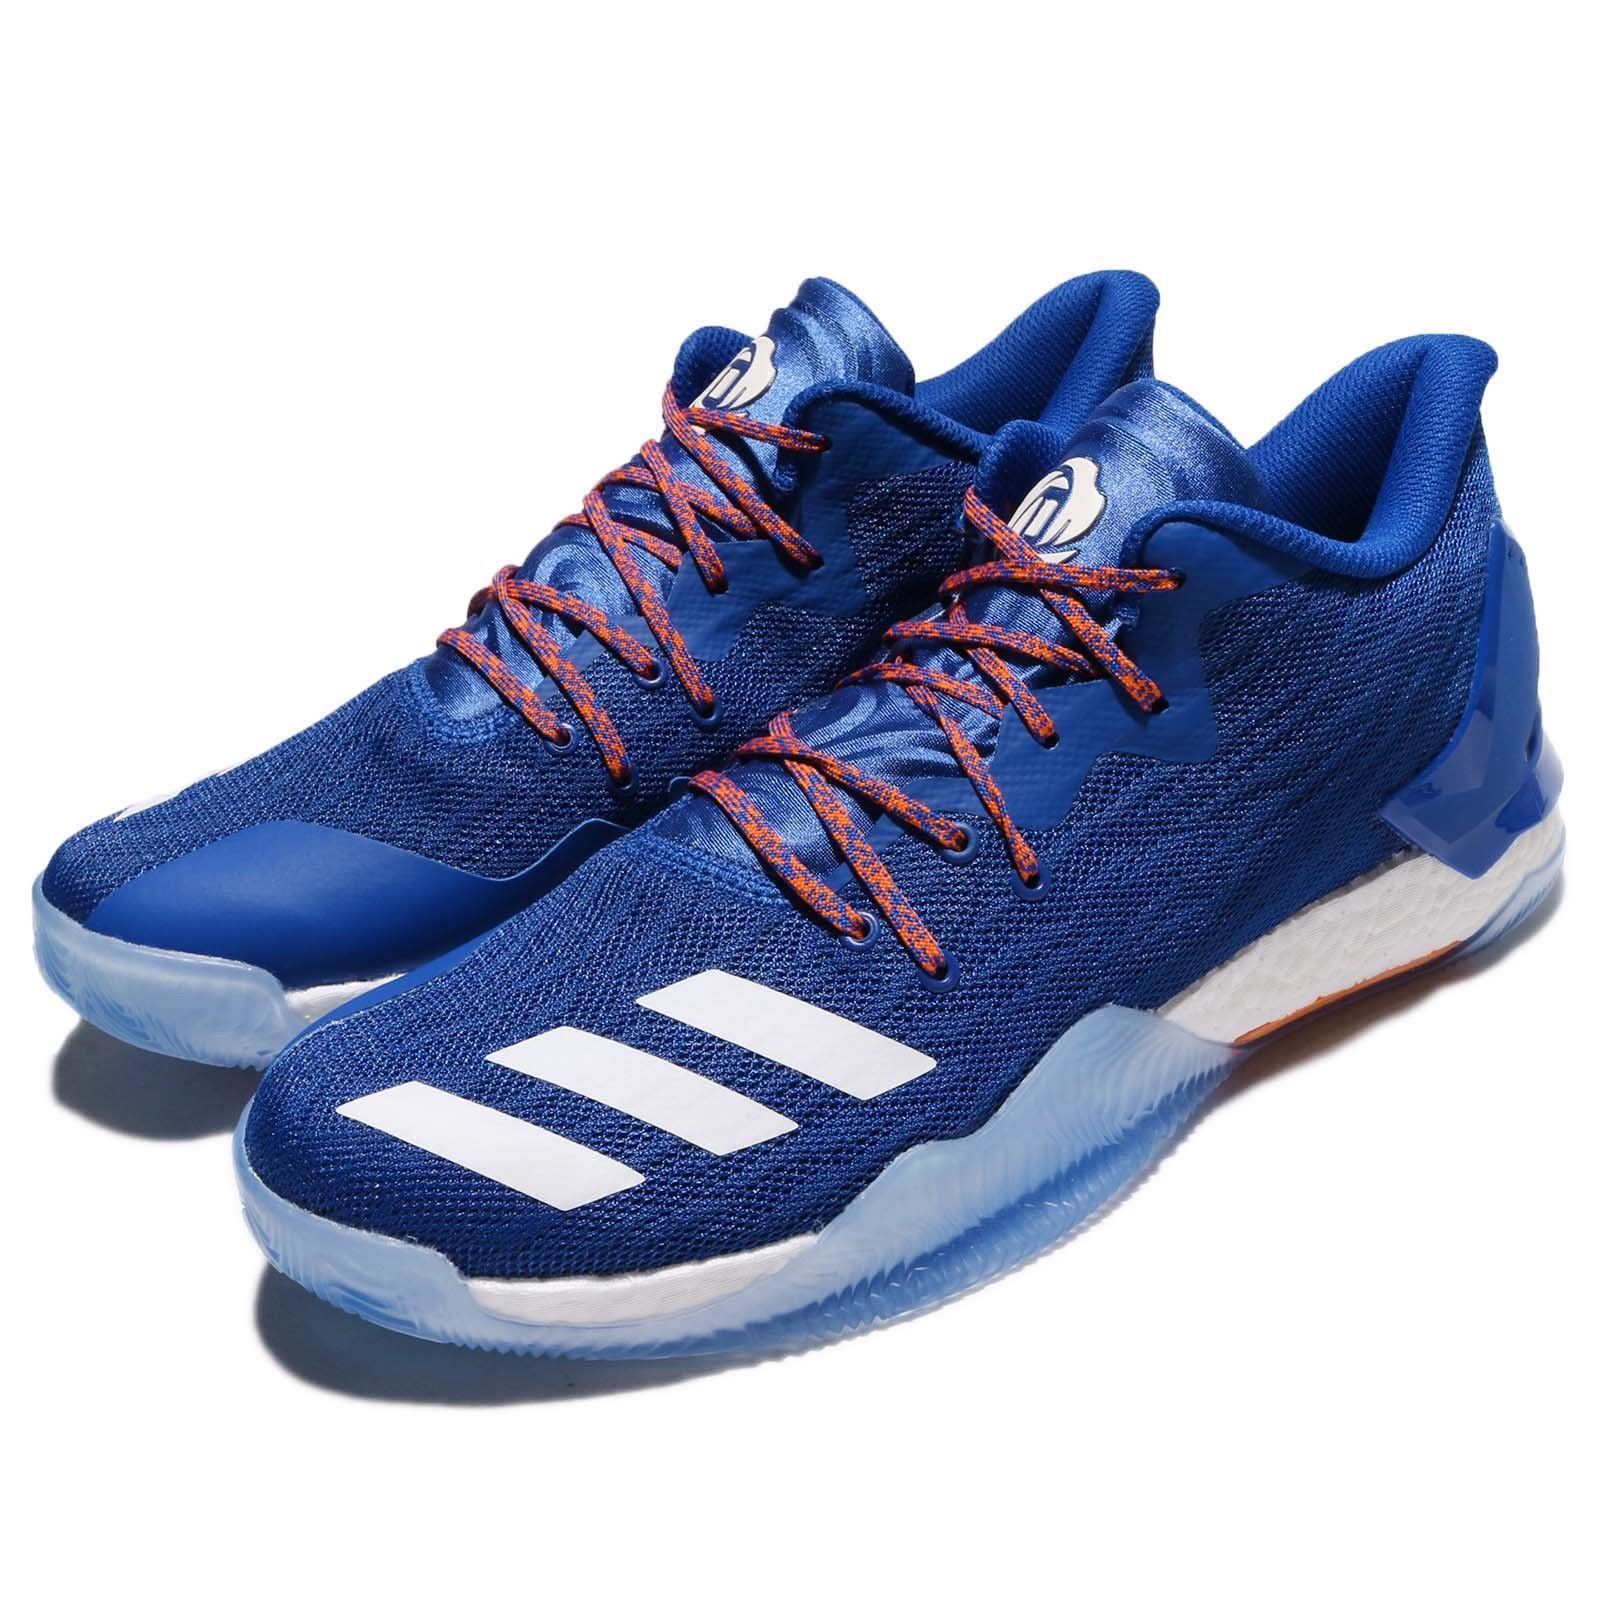 100% authentic 2ee0e 70557 ... coupon for adidas d rose 7 low derrick rose knicks blue orange men basketball  shoes by4499